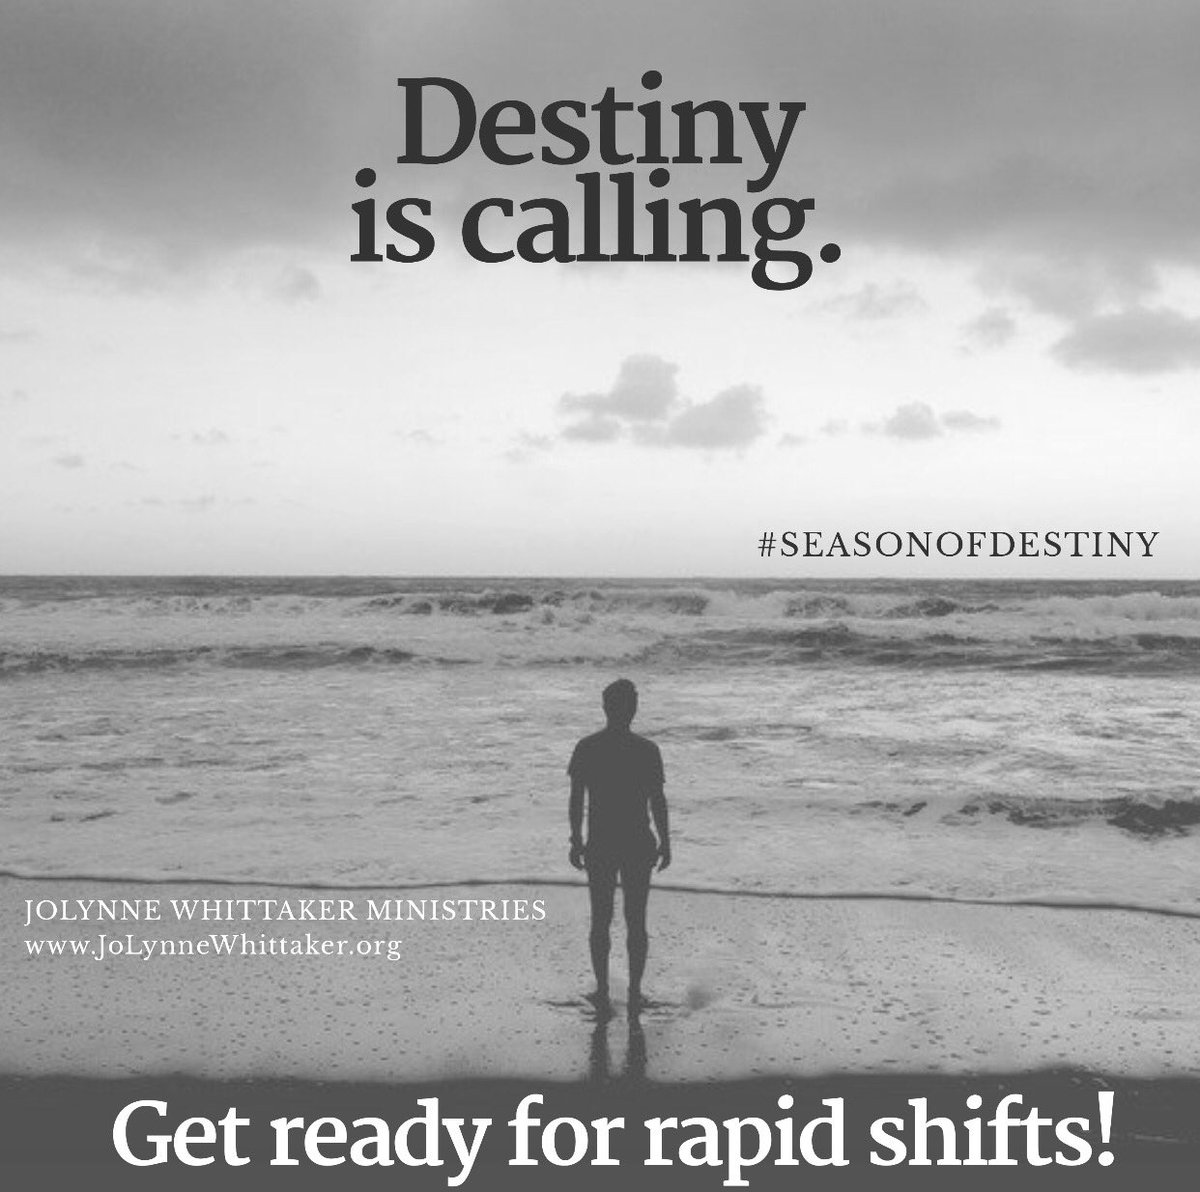 #Destiny is calling! You are being called out of complacency, poverty, fear, insecurity, addiction, sin &amp; indecision. #Jesus is calling you!<br>http://pic.twitter.com/B1LJNOR5zH